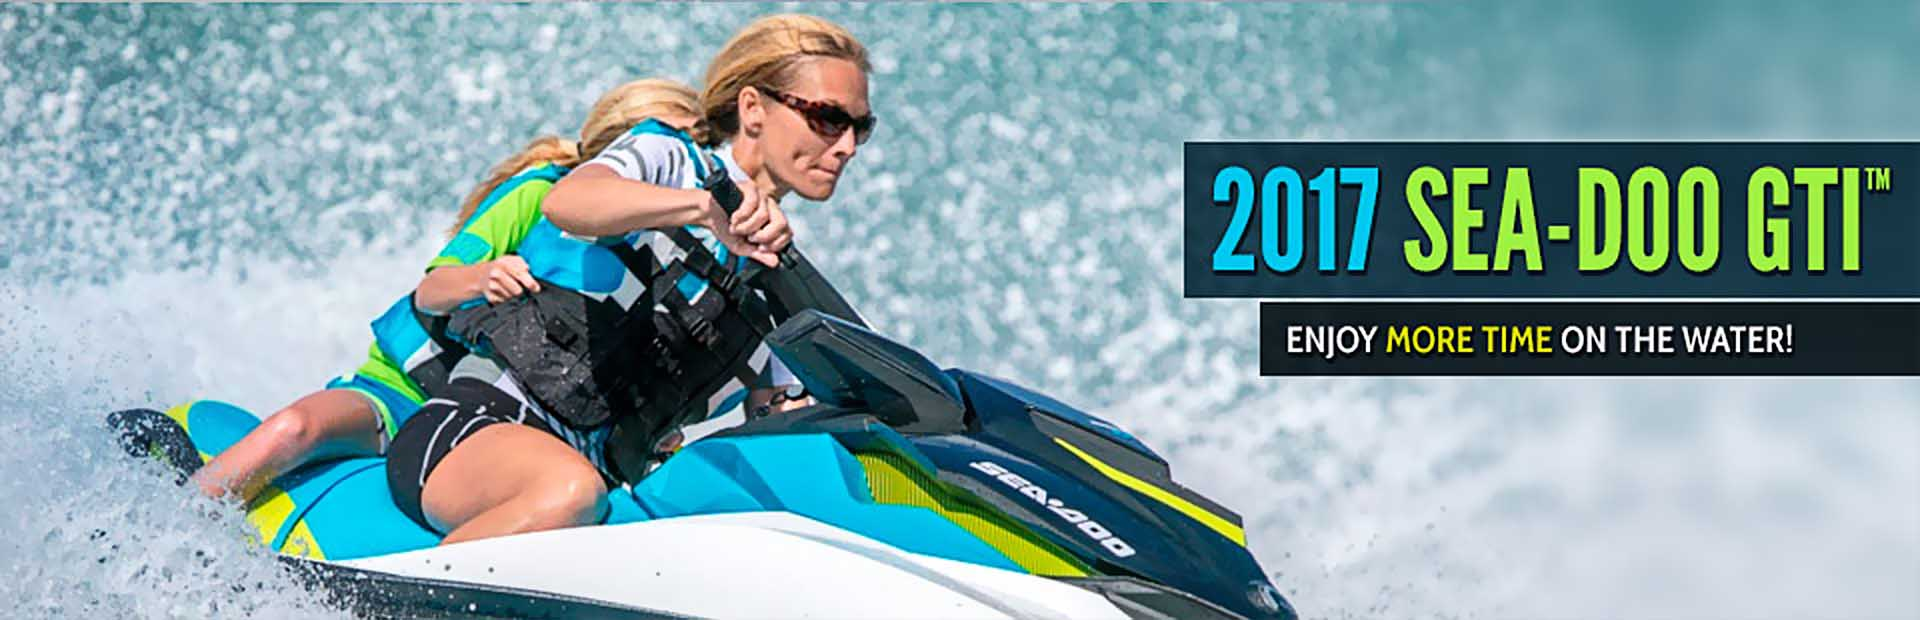 The 2017 Sea-Doo GTI™: Click here for details.